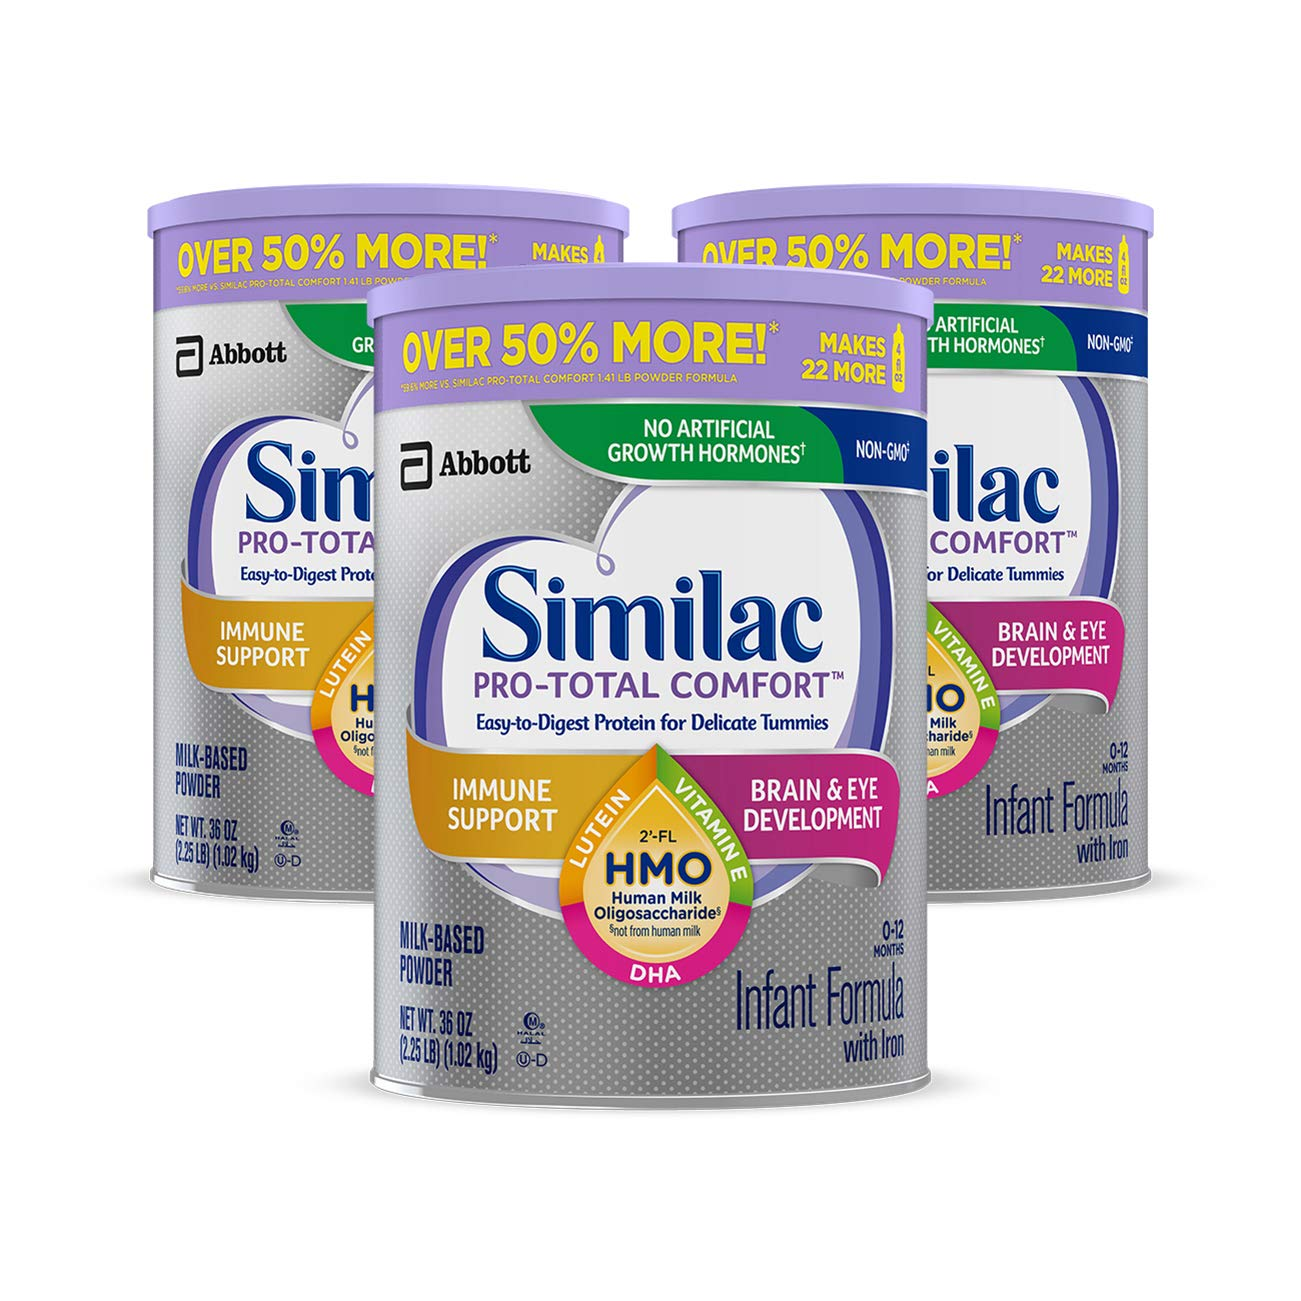 Similac Pro-Total Comfort Infant Formula OPTI-GRO, Non-GMO, Easy-to-Digest, Gentle Formula, with 2'-FL HMO, for Immune Support, Baby Formula, Powder, 36 Ounce (Pack of 3) by Similac (Image #1)